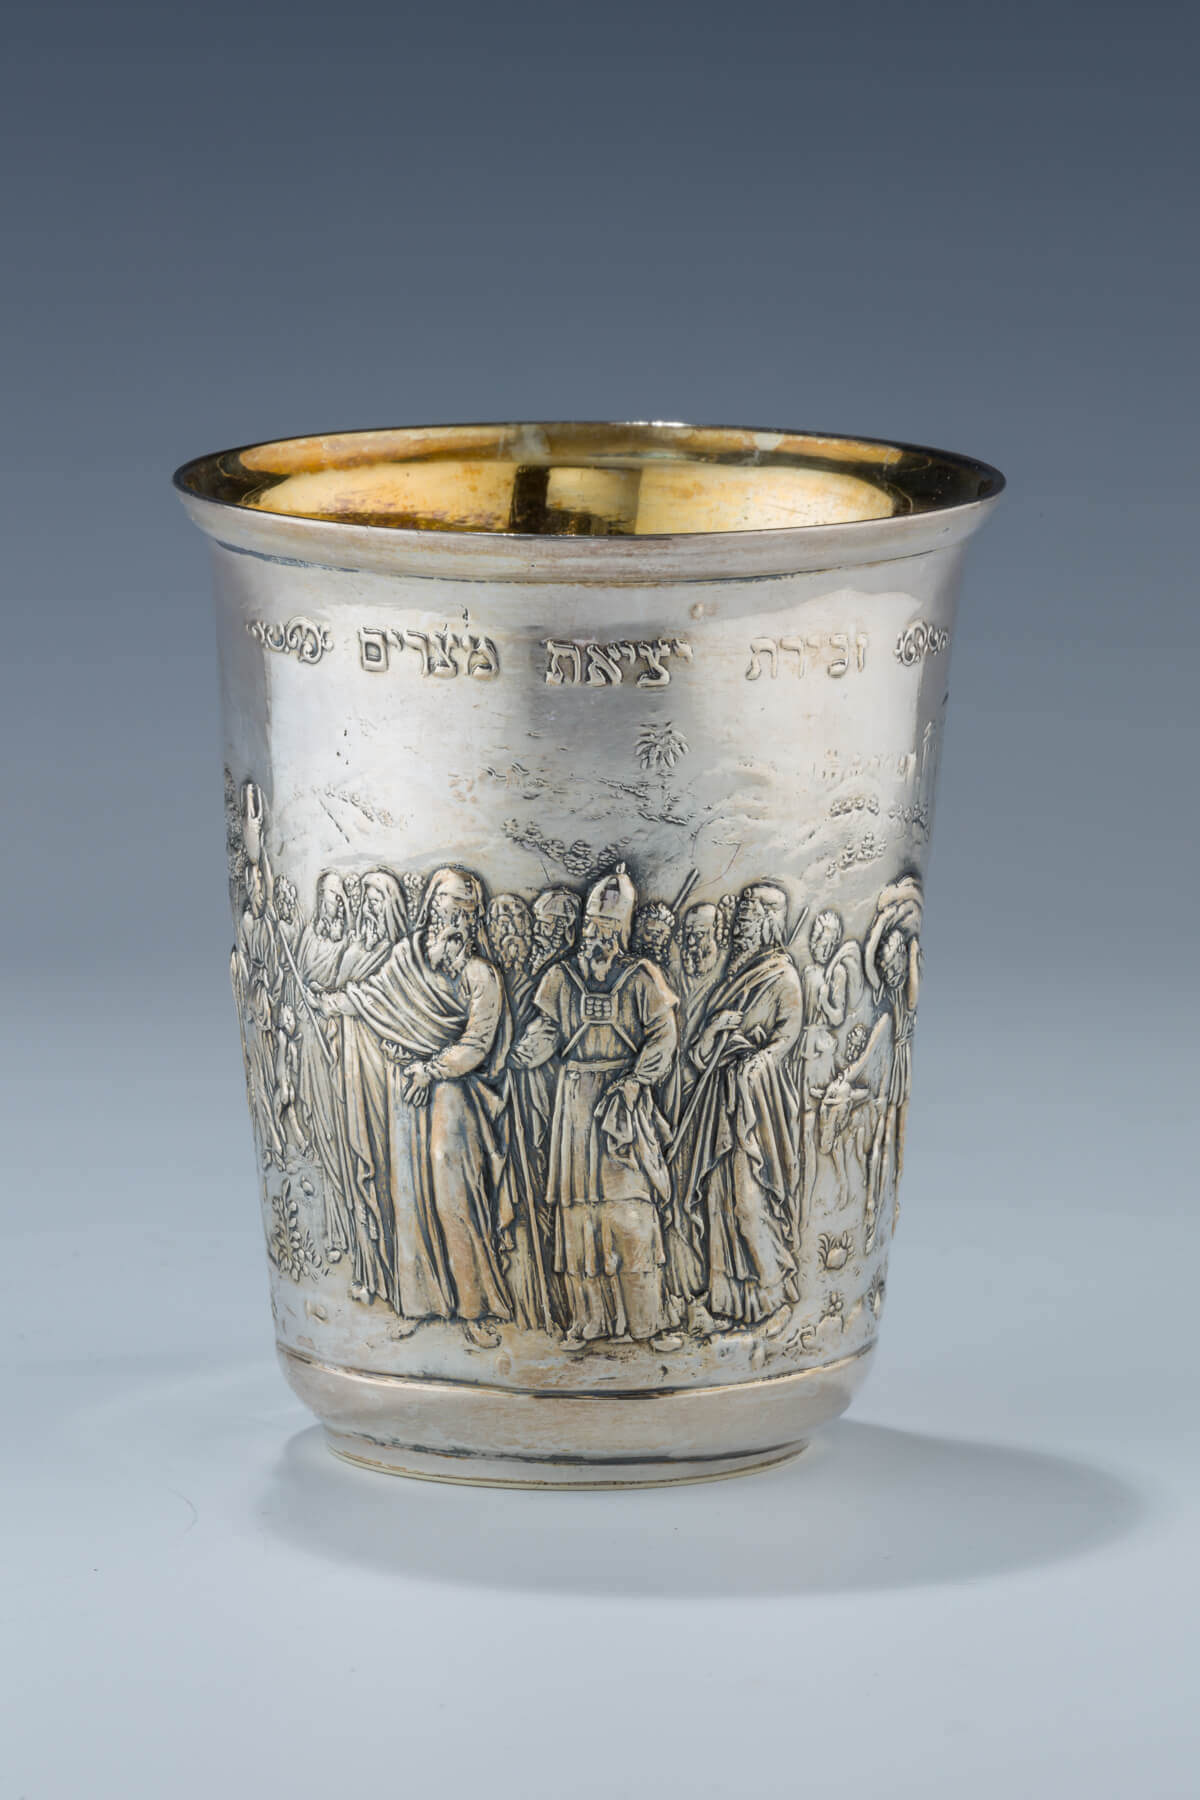 177. A MASSIVE STERLING SILVER PASSOVER CUP BY HENRYK WINOGRAD